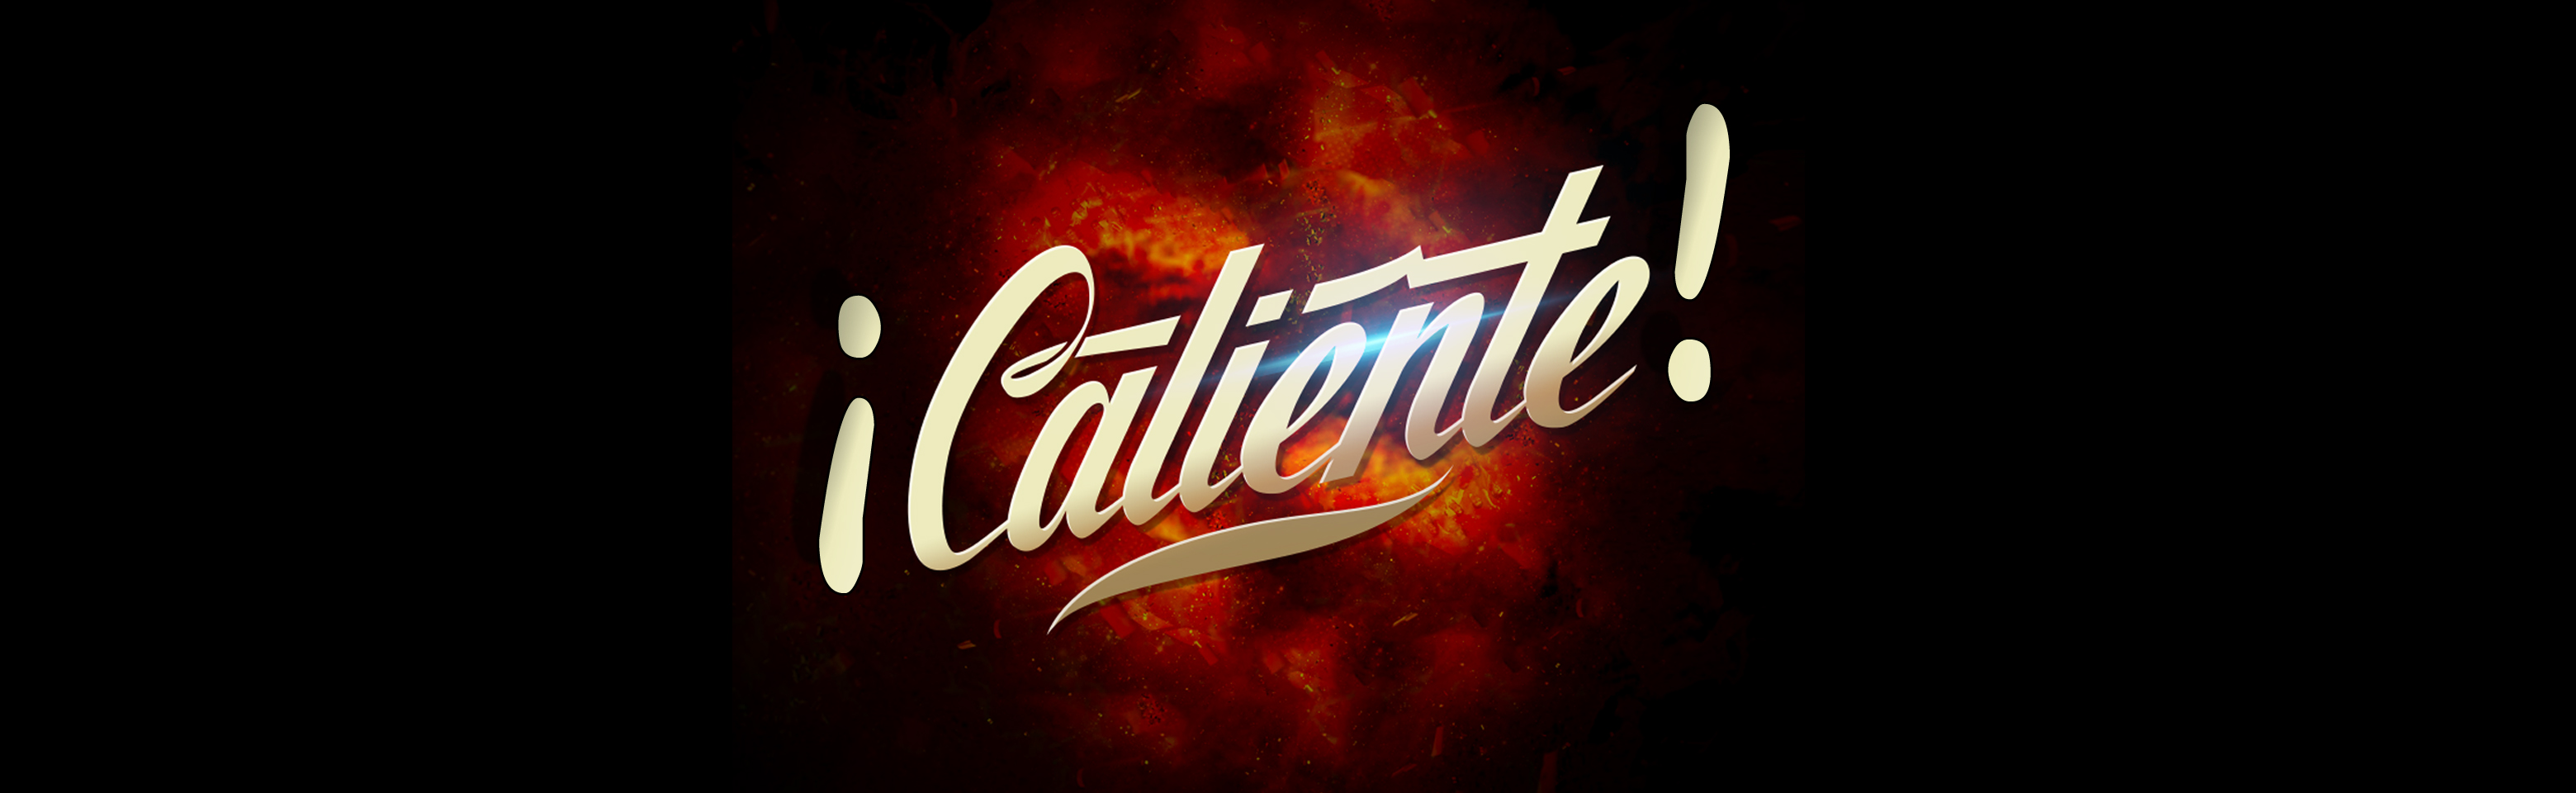 Caliente! presented by the Space Coast Symphony Orchestra